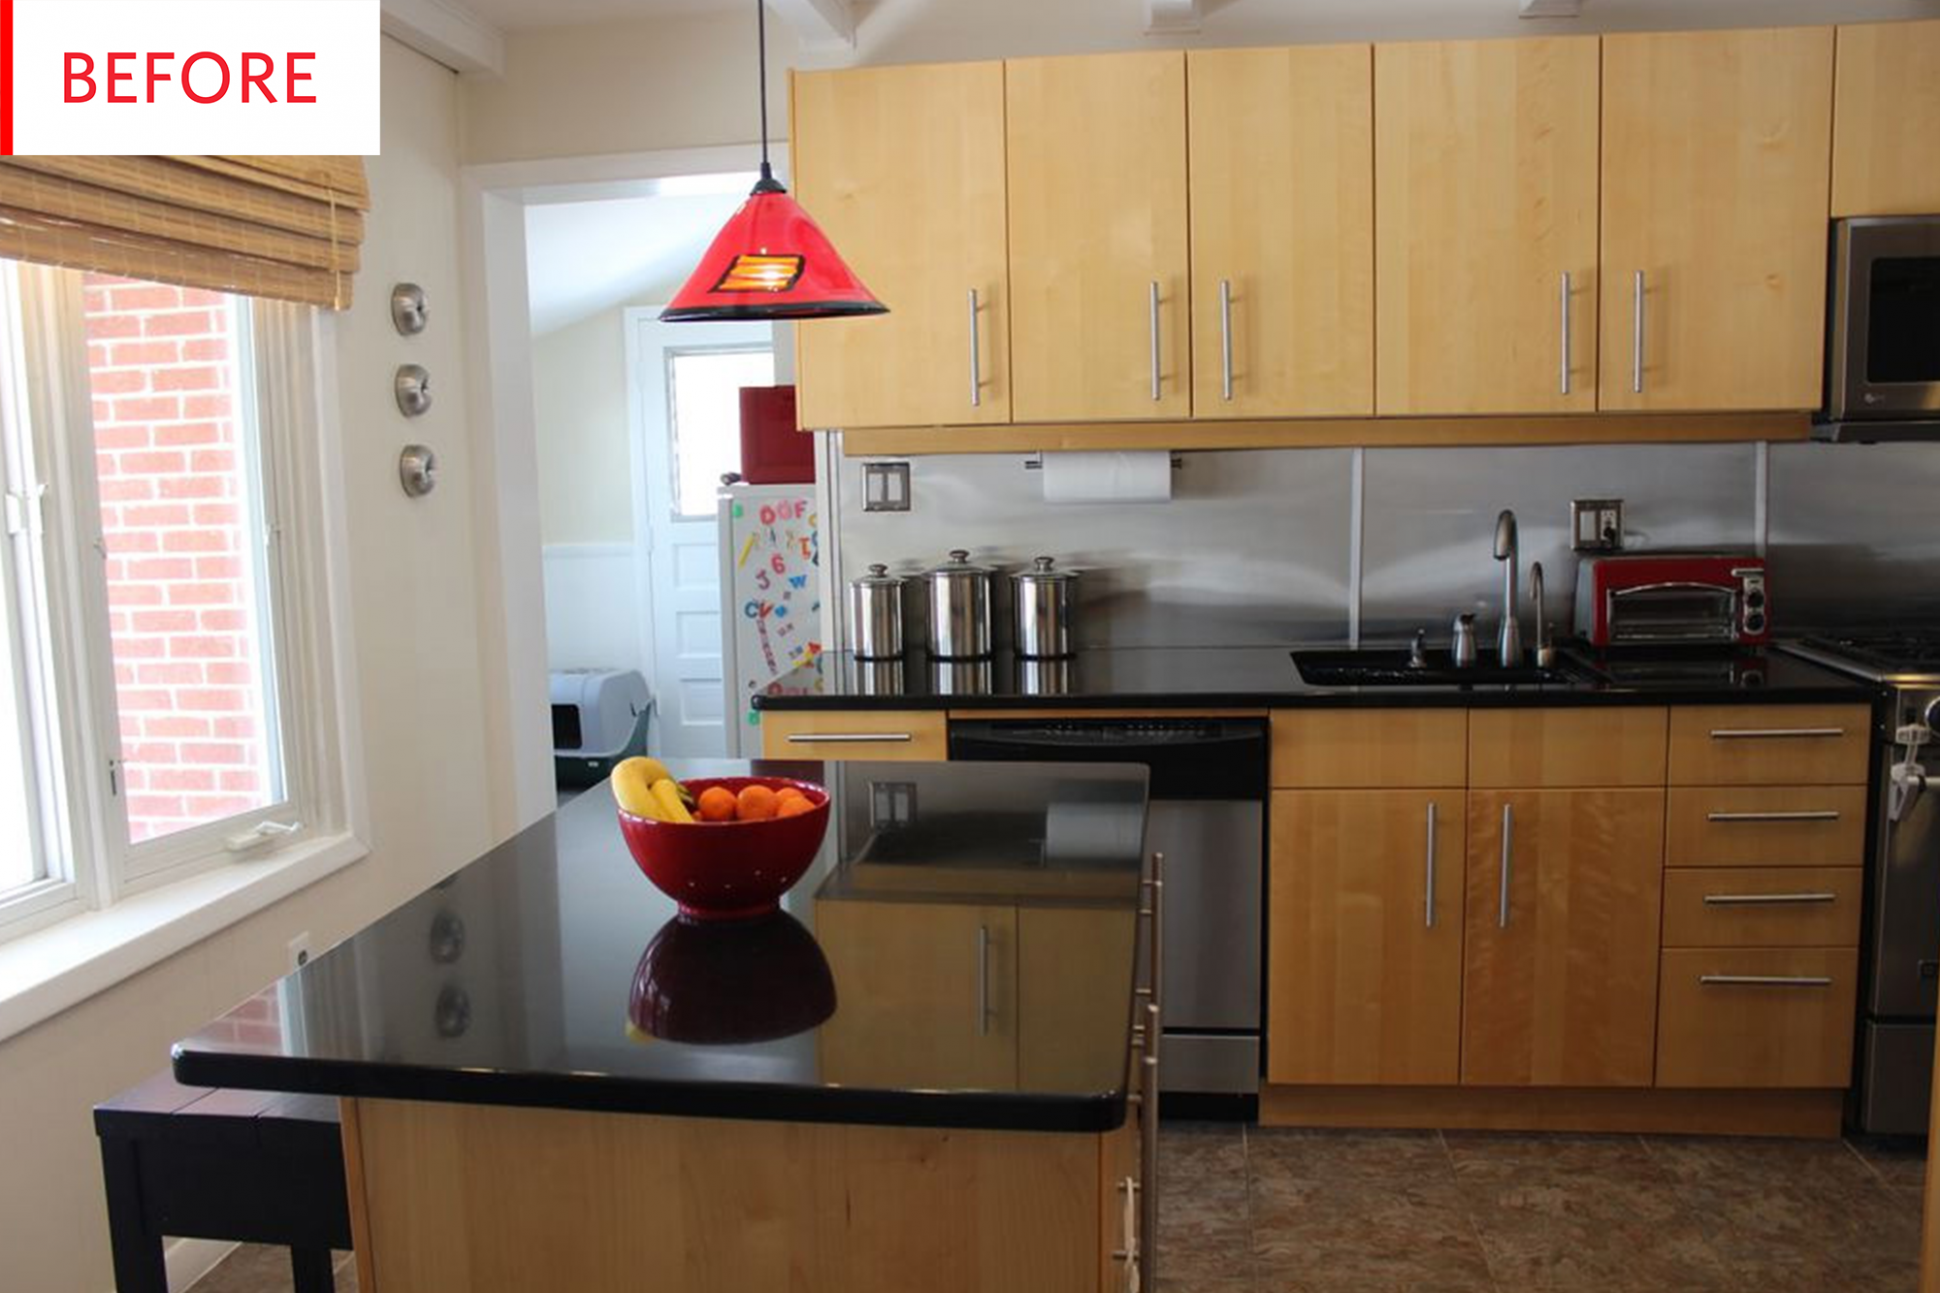 IKEA Kitchen Cabinets - SEKTION Doors  Apartment Therapy - Donate Kitchen Cabinets Chicago